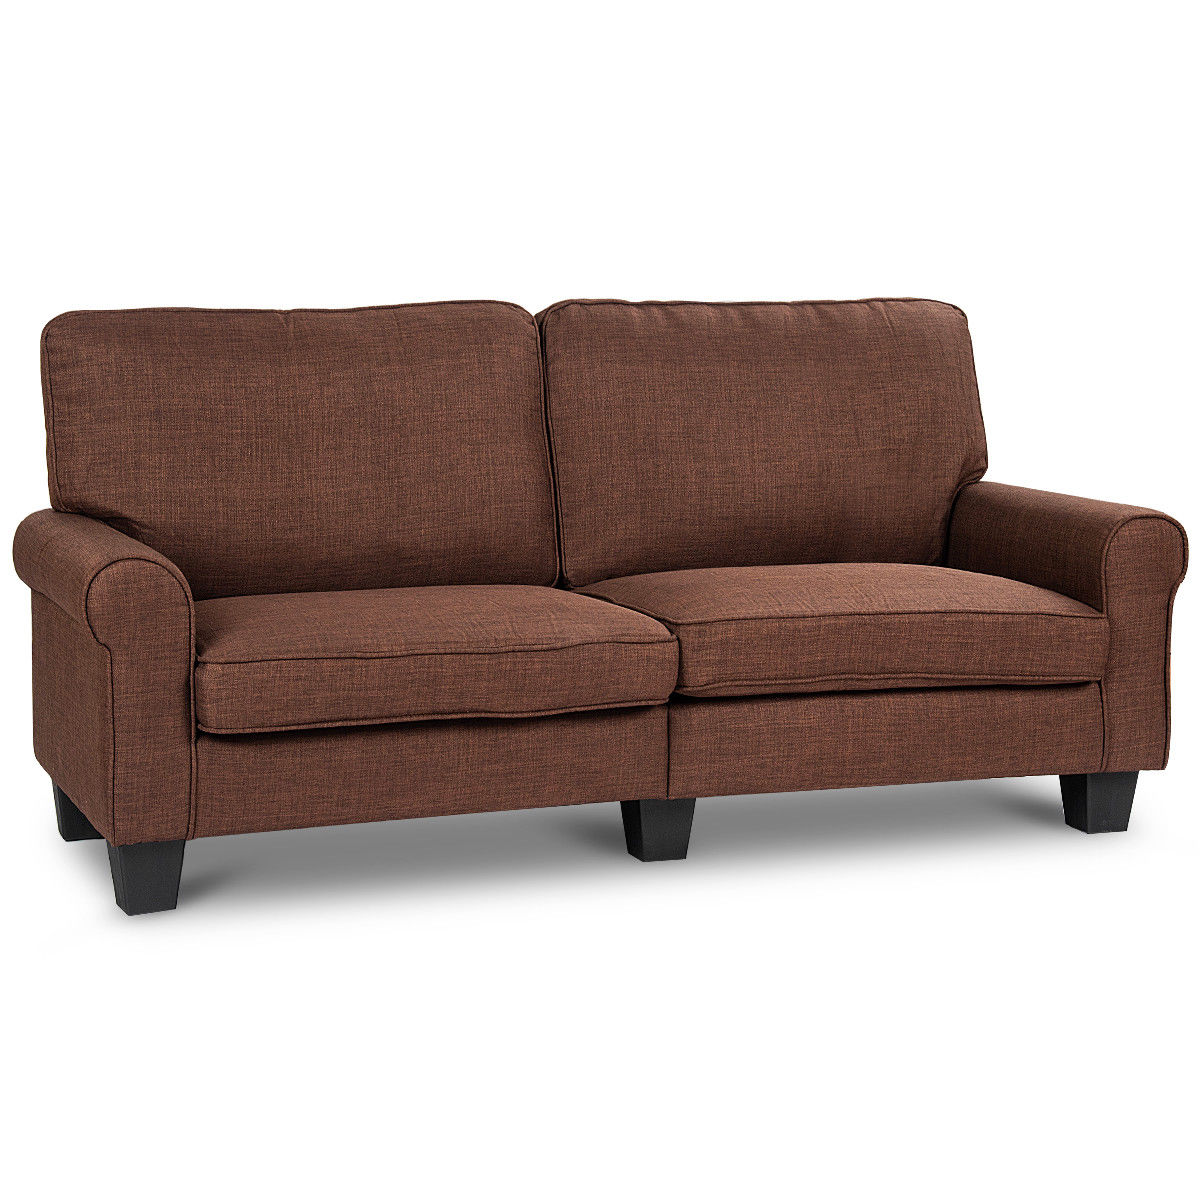 Gymax Sofa Couch Loveseat Fabric Upholstered Curved Armrest Home Living Room Furniture